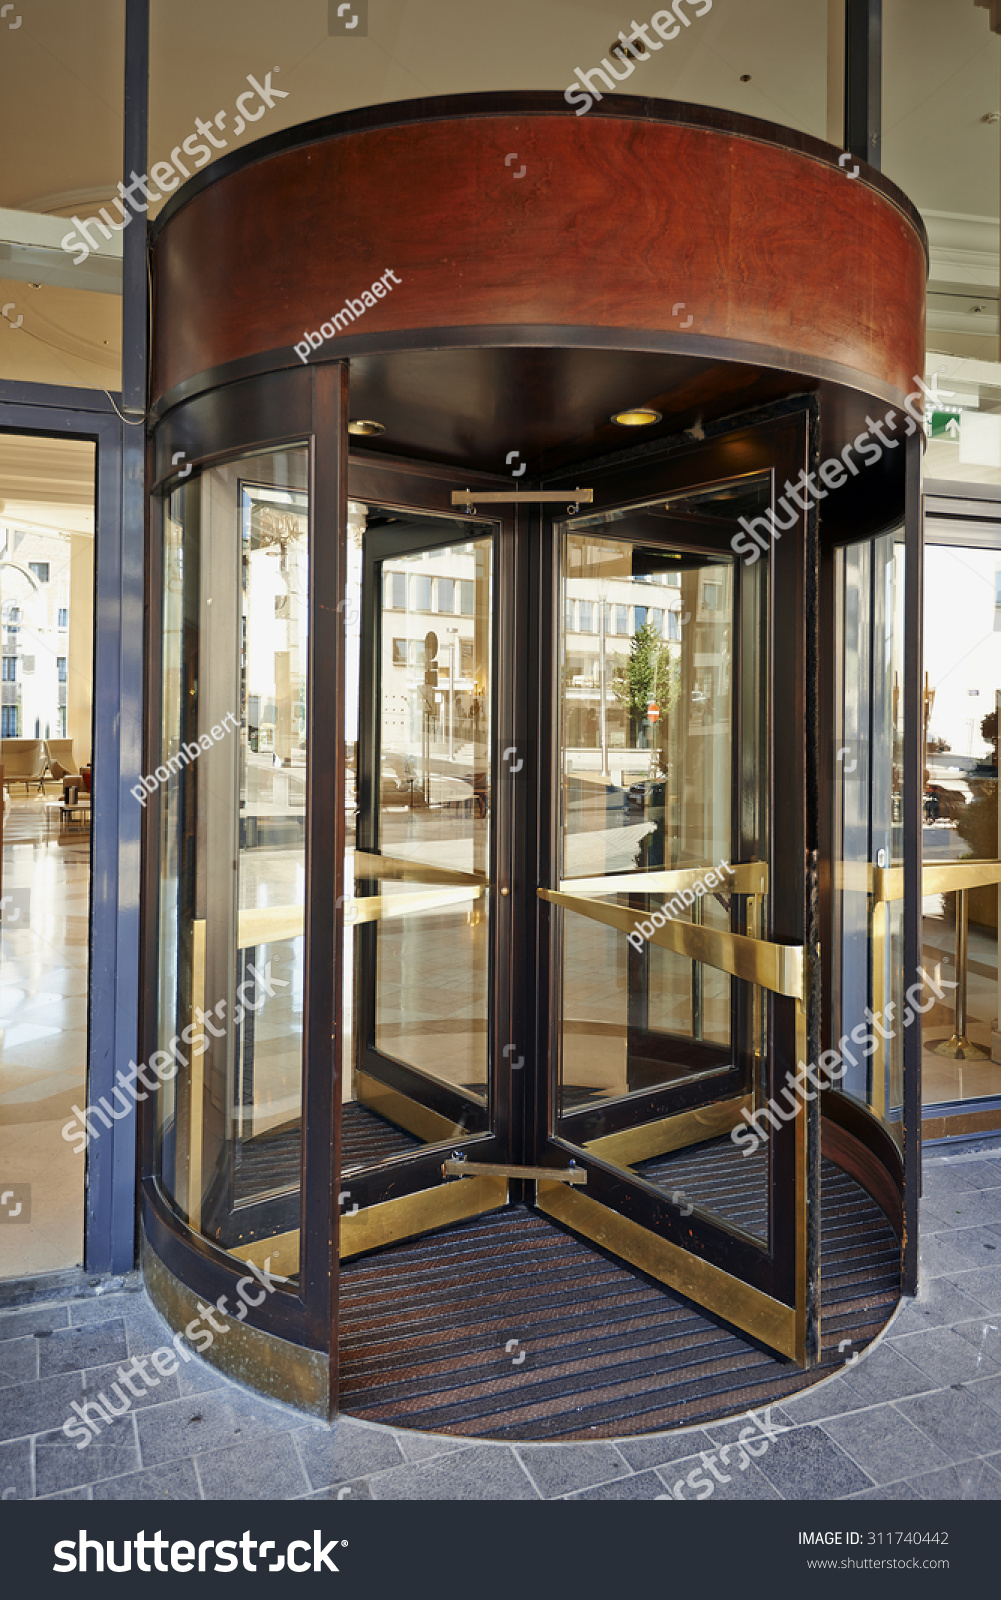 Details Of A Modern Hotel Entrance Glass Doors And Illumination